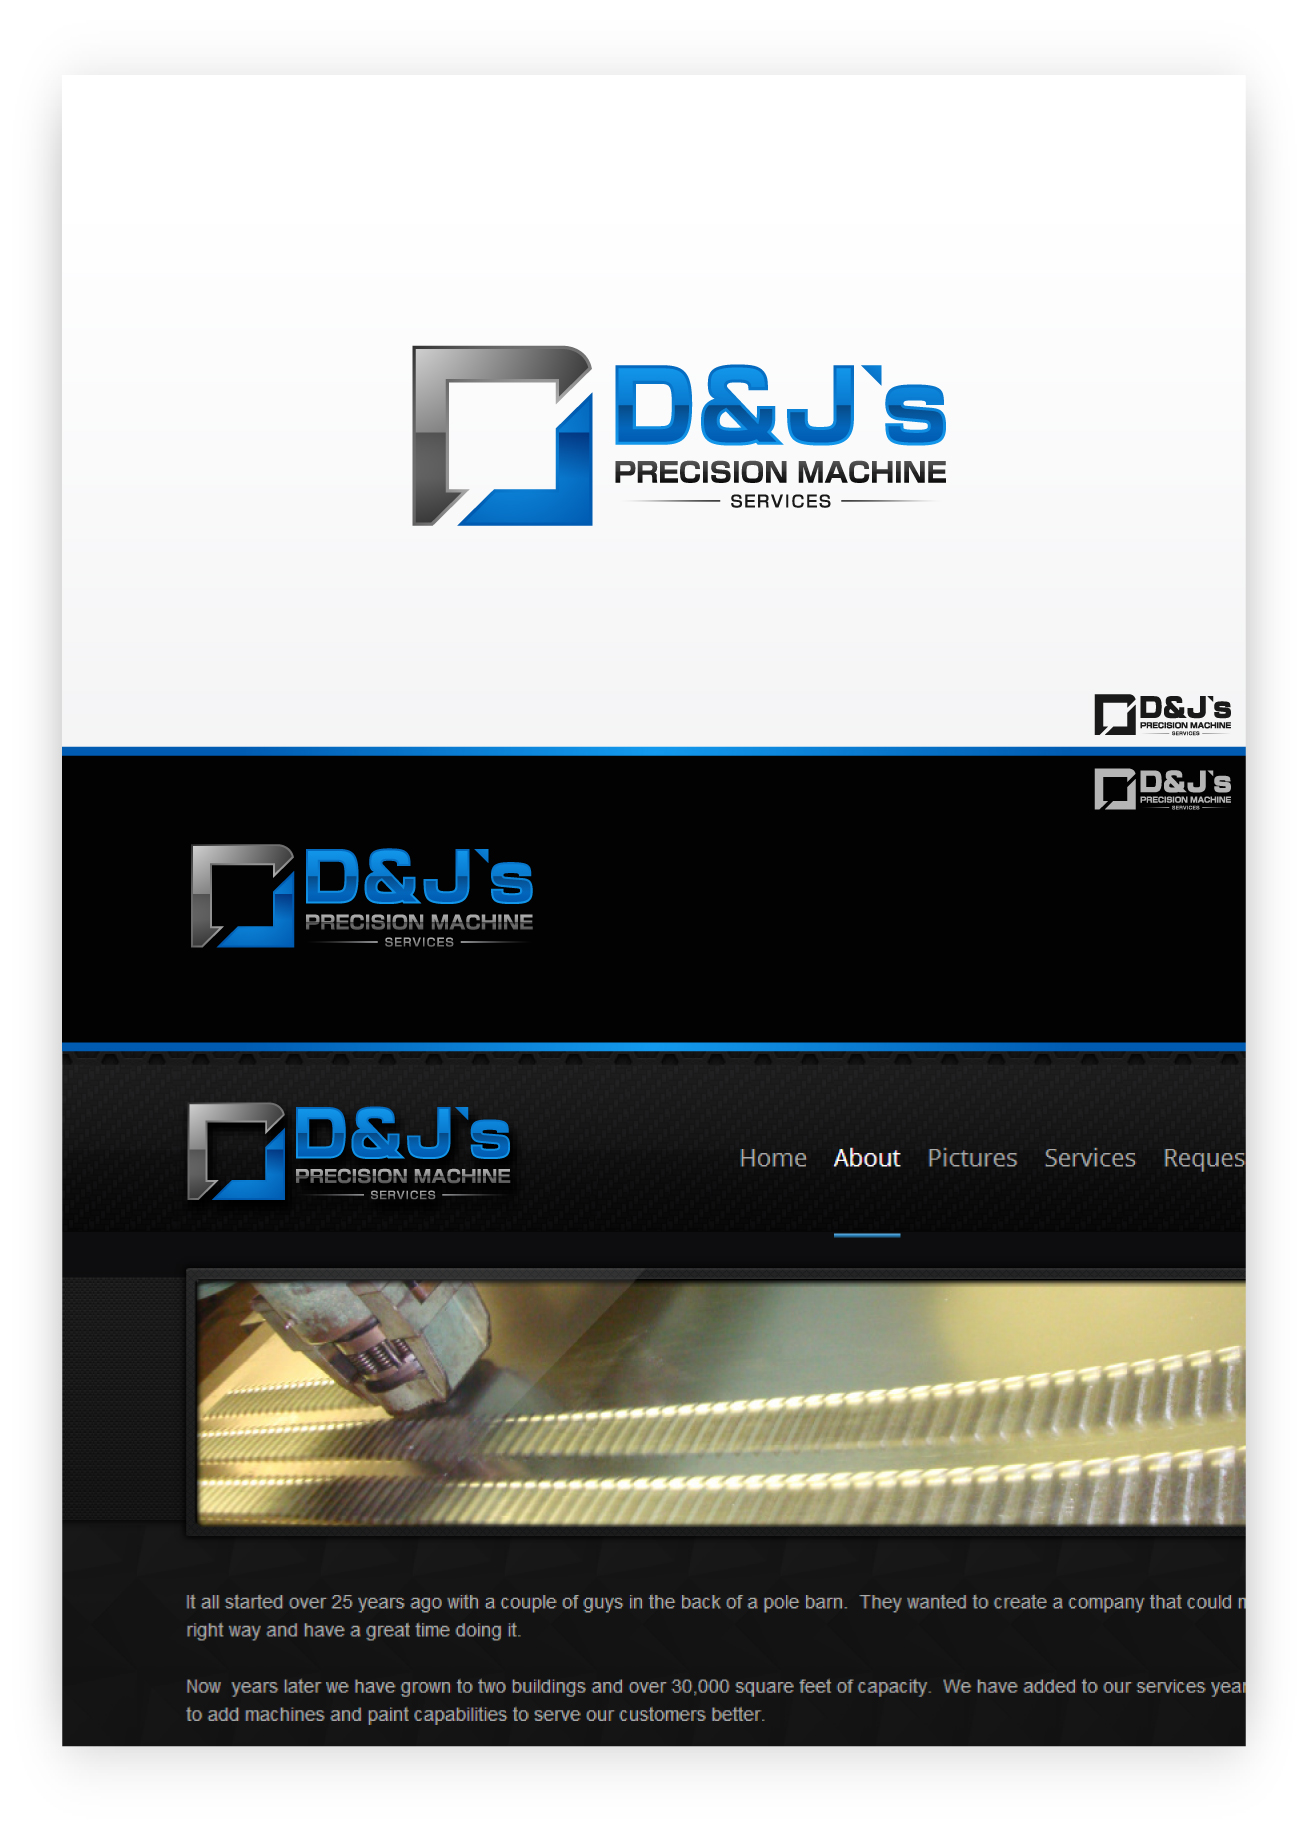 Logo Design by zoiDesign - Entry No. 86 in the Logo Design Contest Creative Logo Design for D & J's Precision Machine Services.